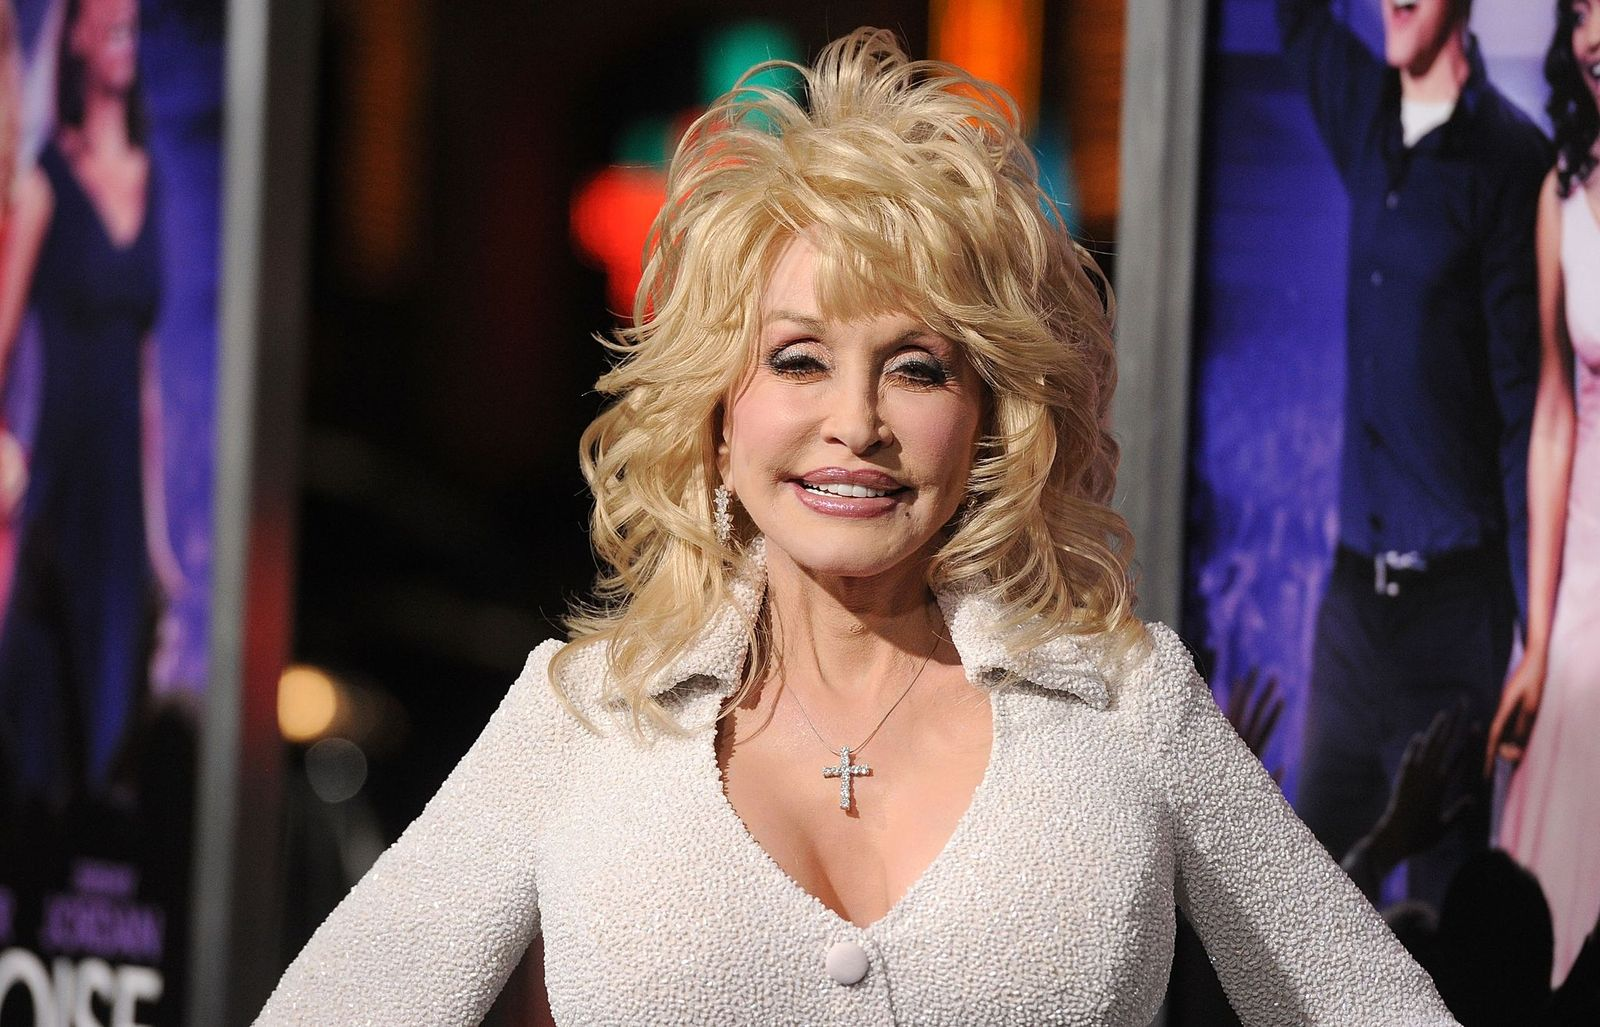 """Dolly Parton at the premiere of Warner Bros. Pictures' """"Joyful Noise"""" held at Grauman's Chinese Theatre on January 9, 2012 in Hollywood, California 